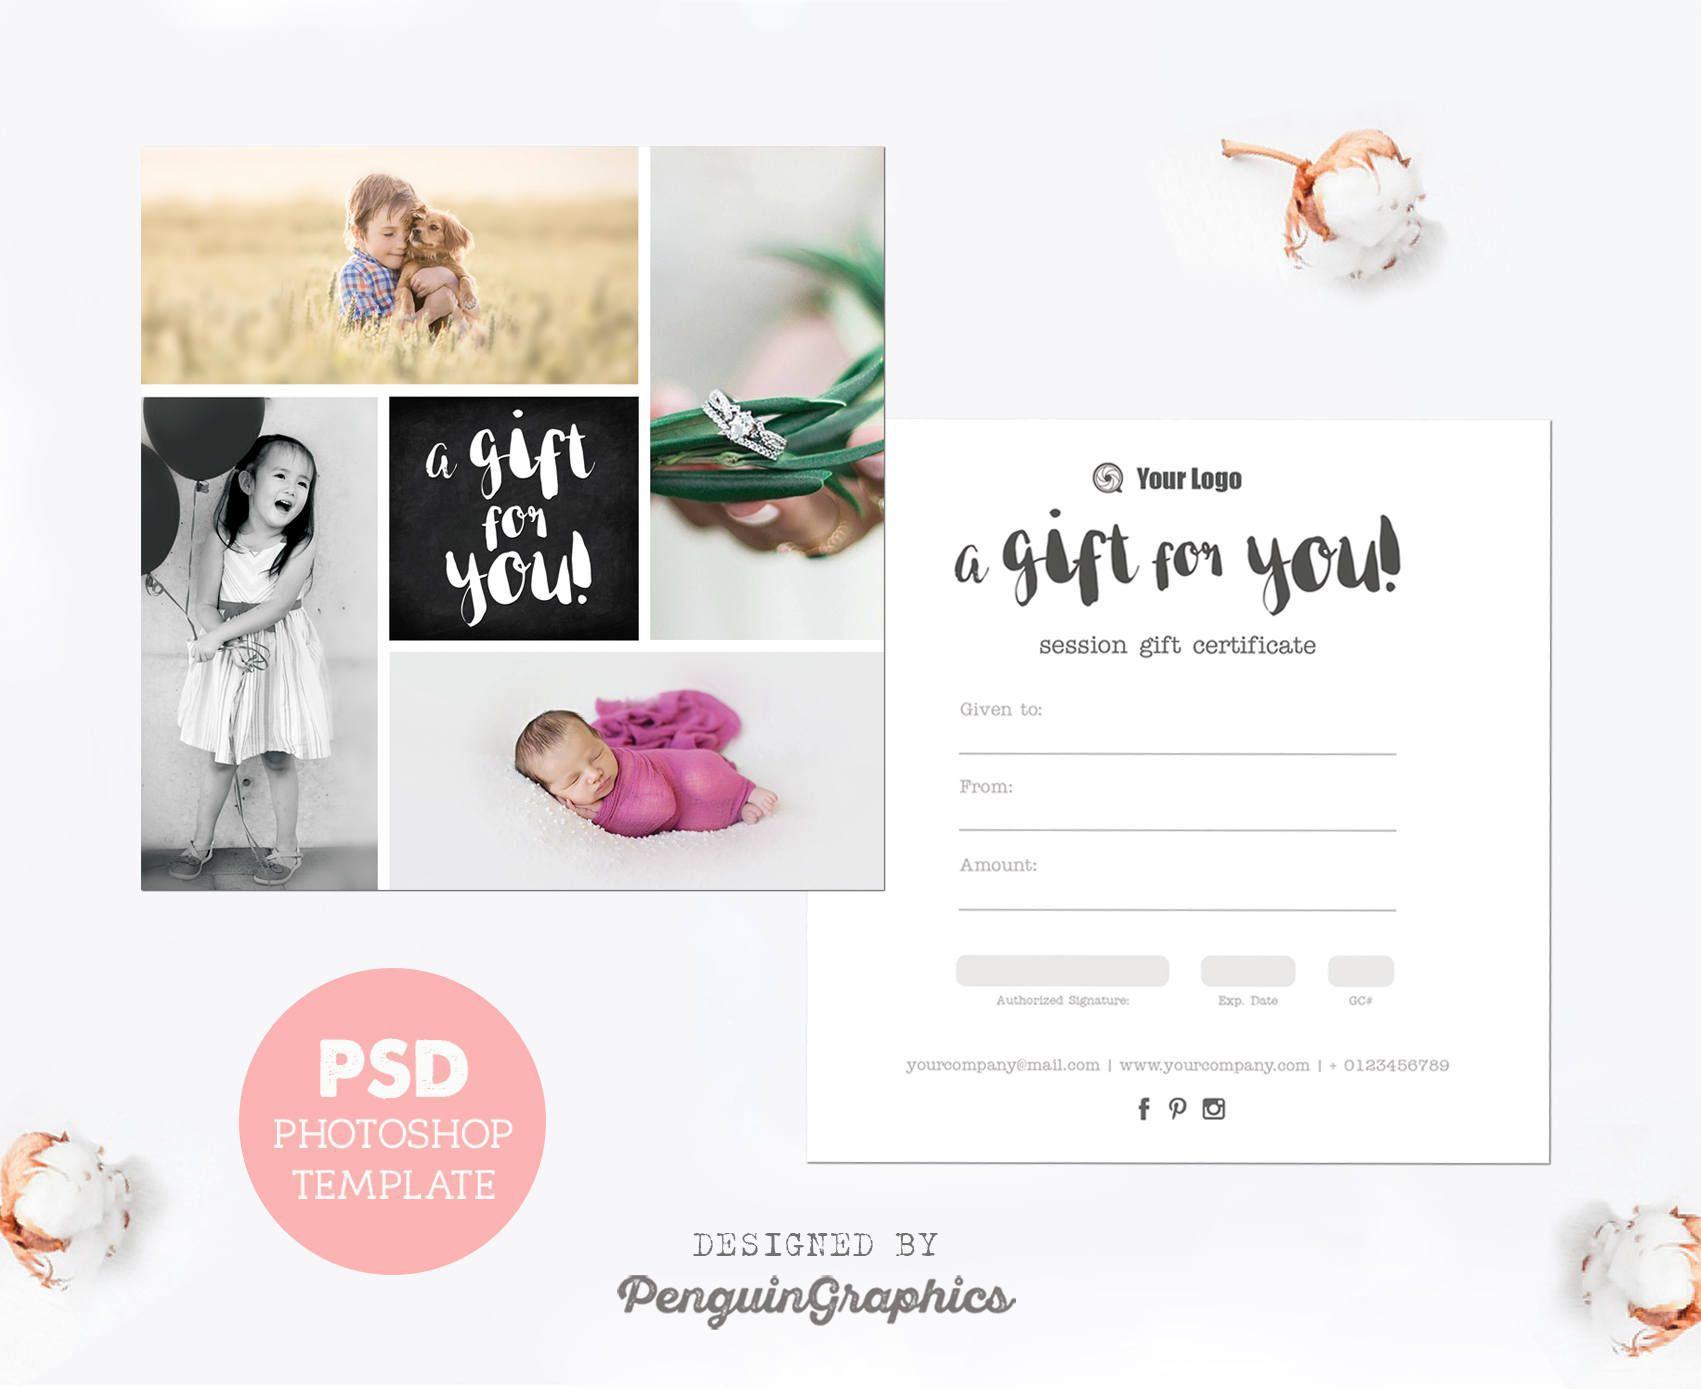 006 Exceptional Photography Session Gift Certificate Template Design  Photo FreeFull